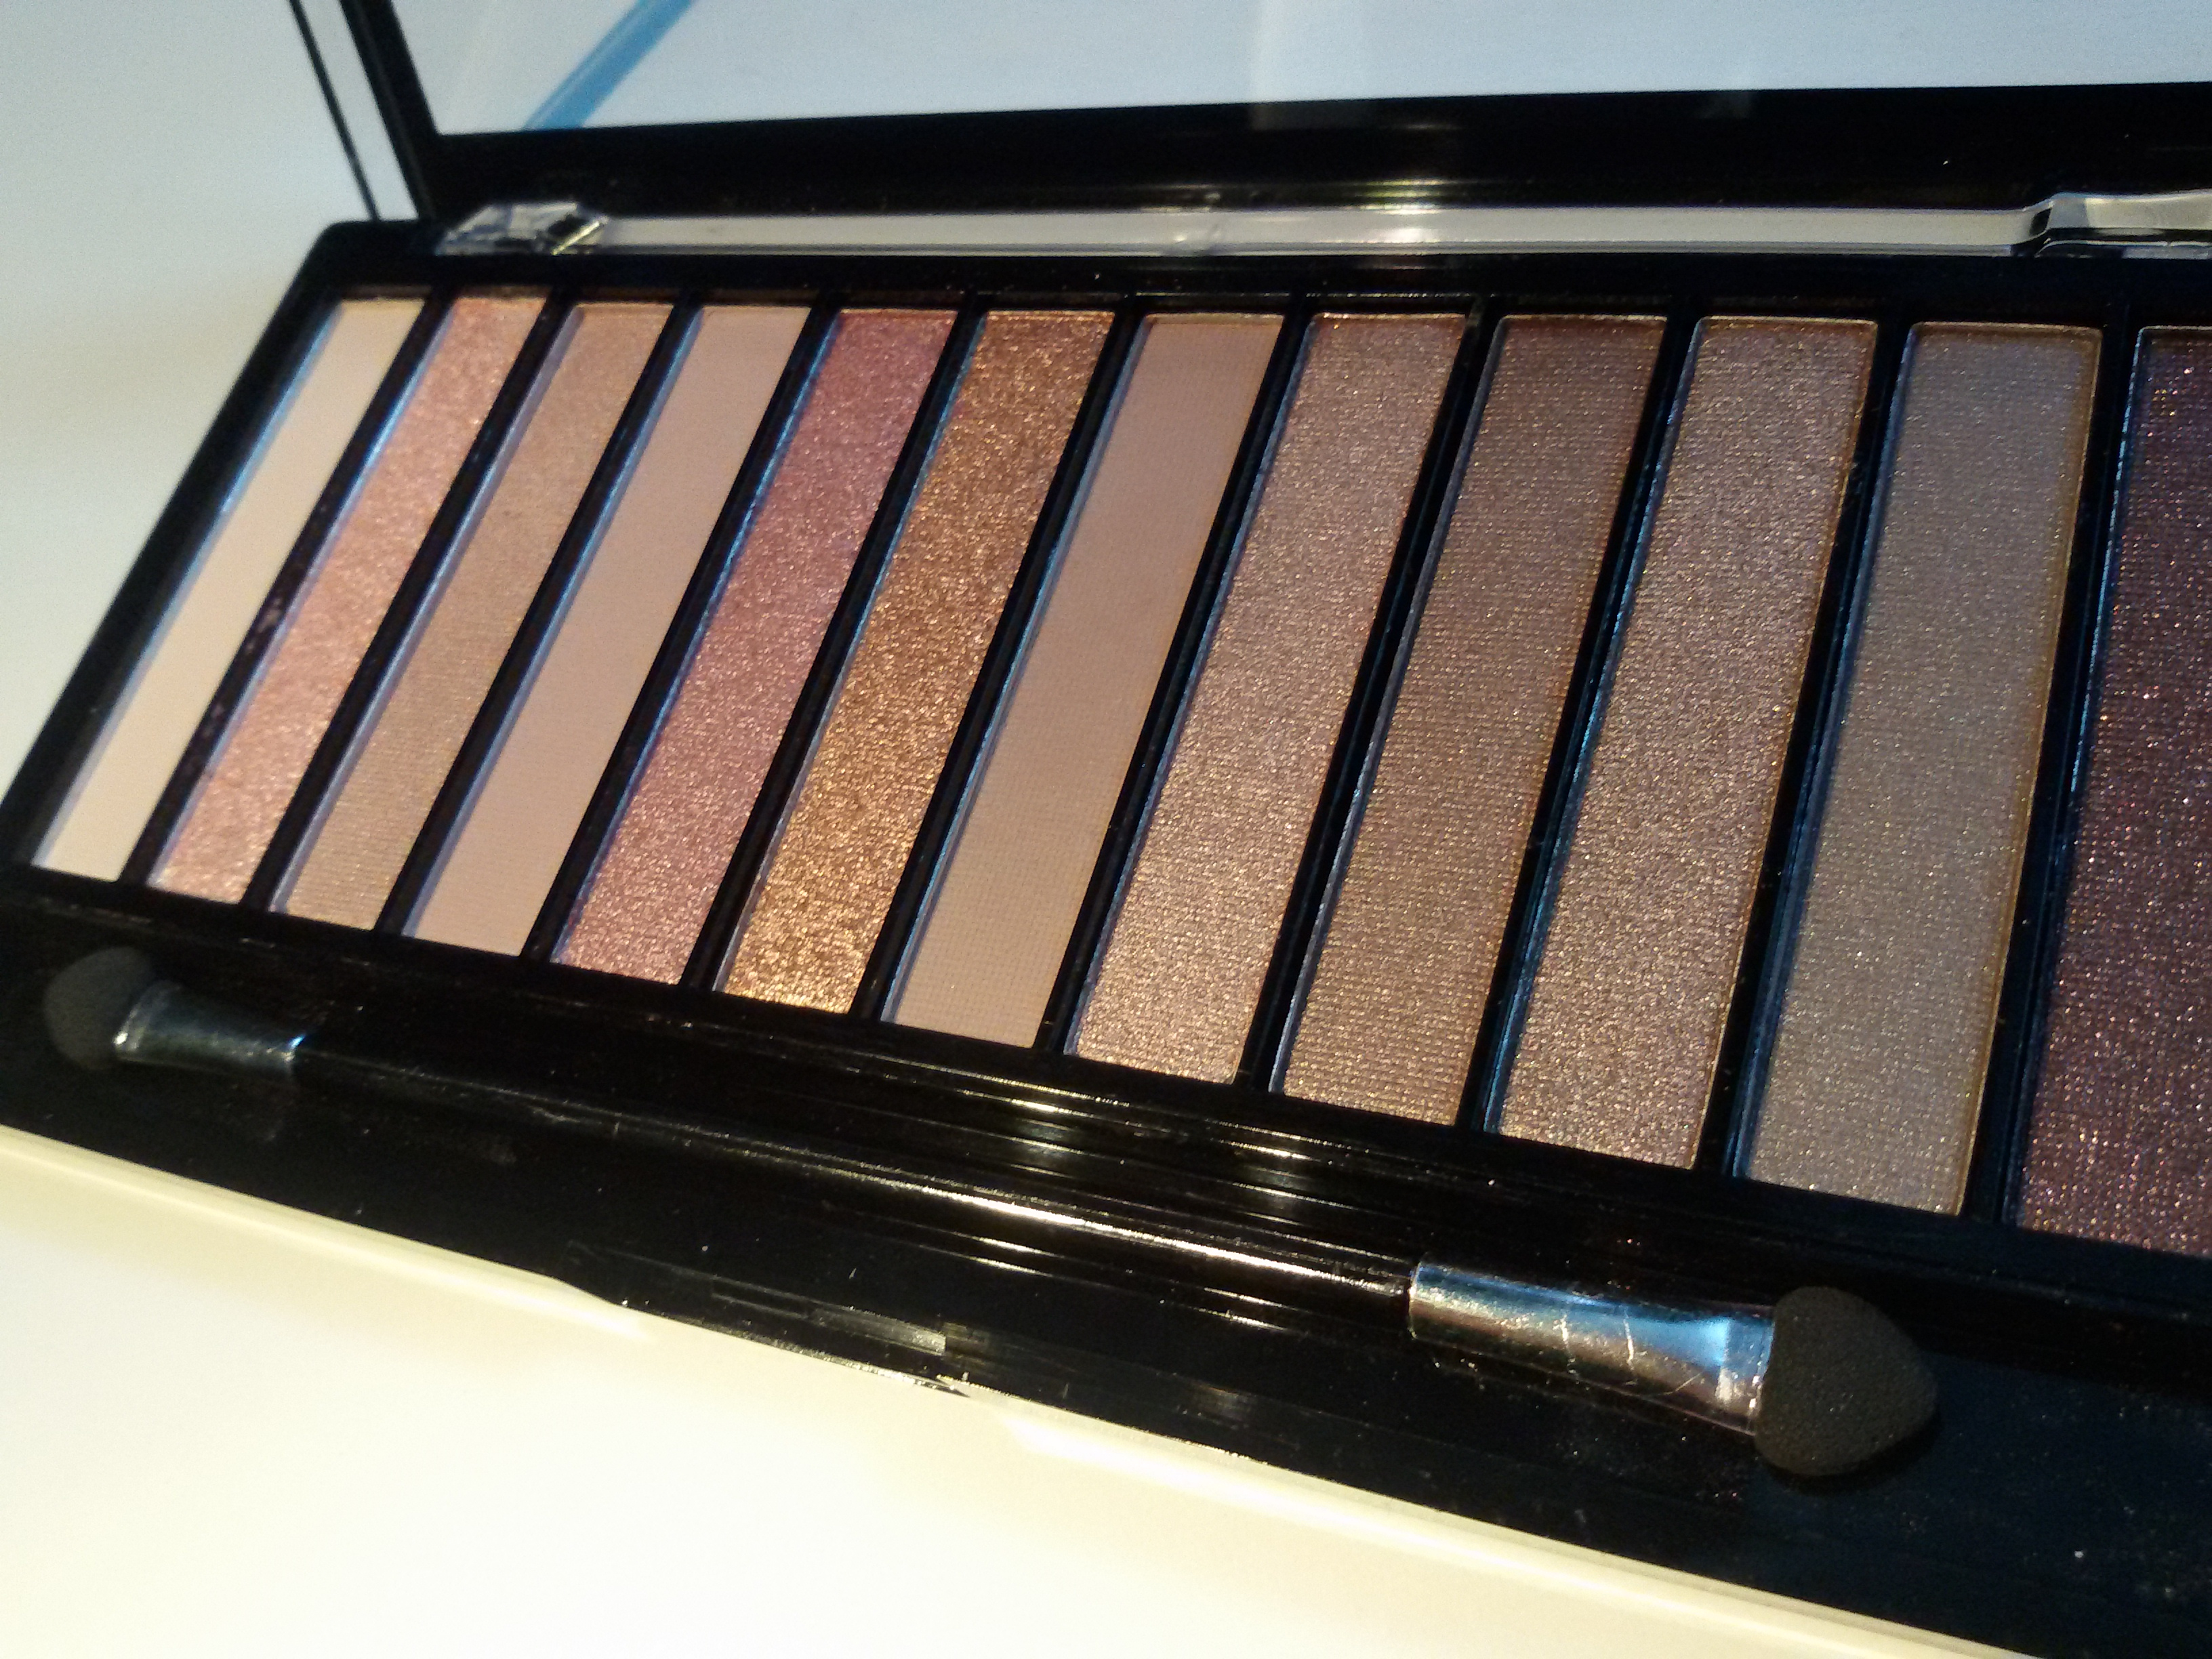 Makeup revolution iconic 3 review